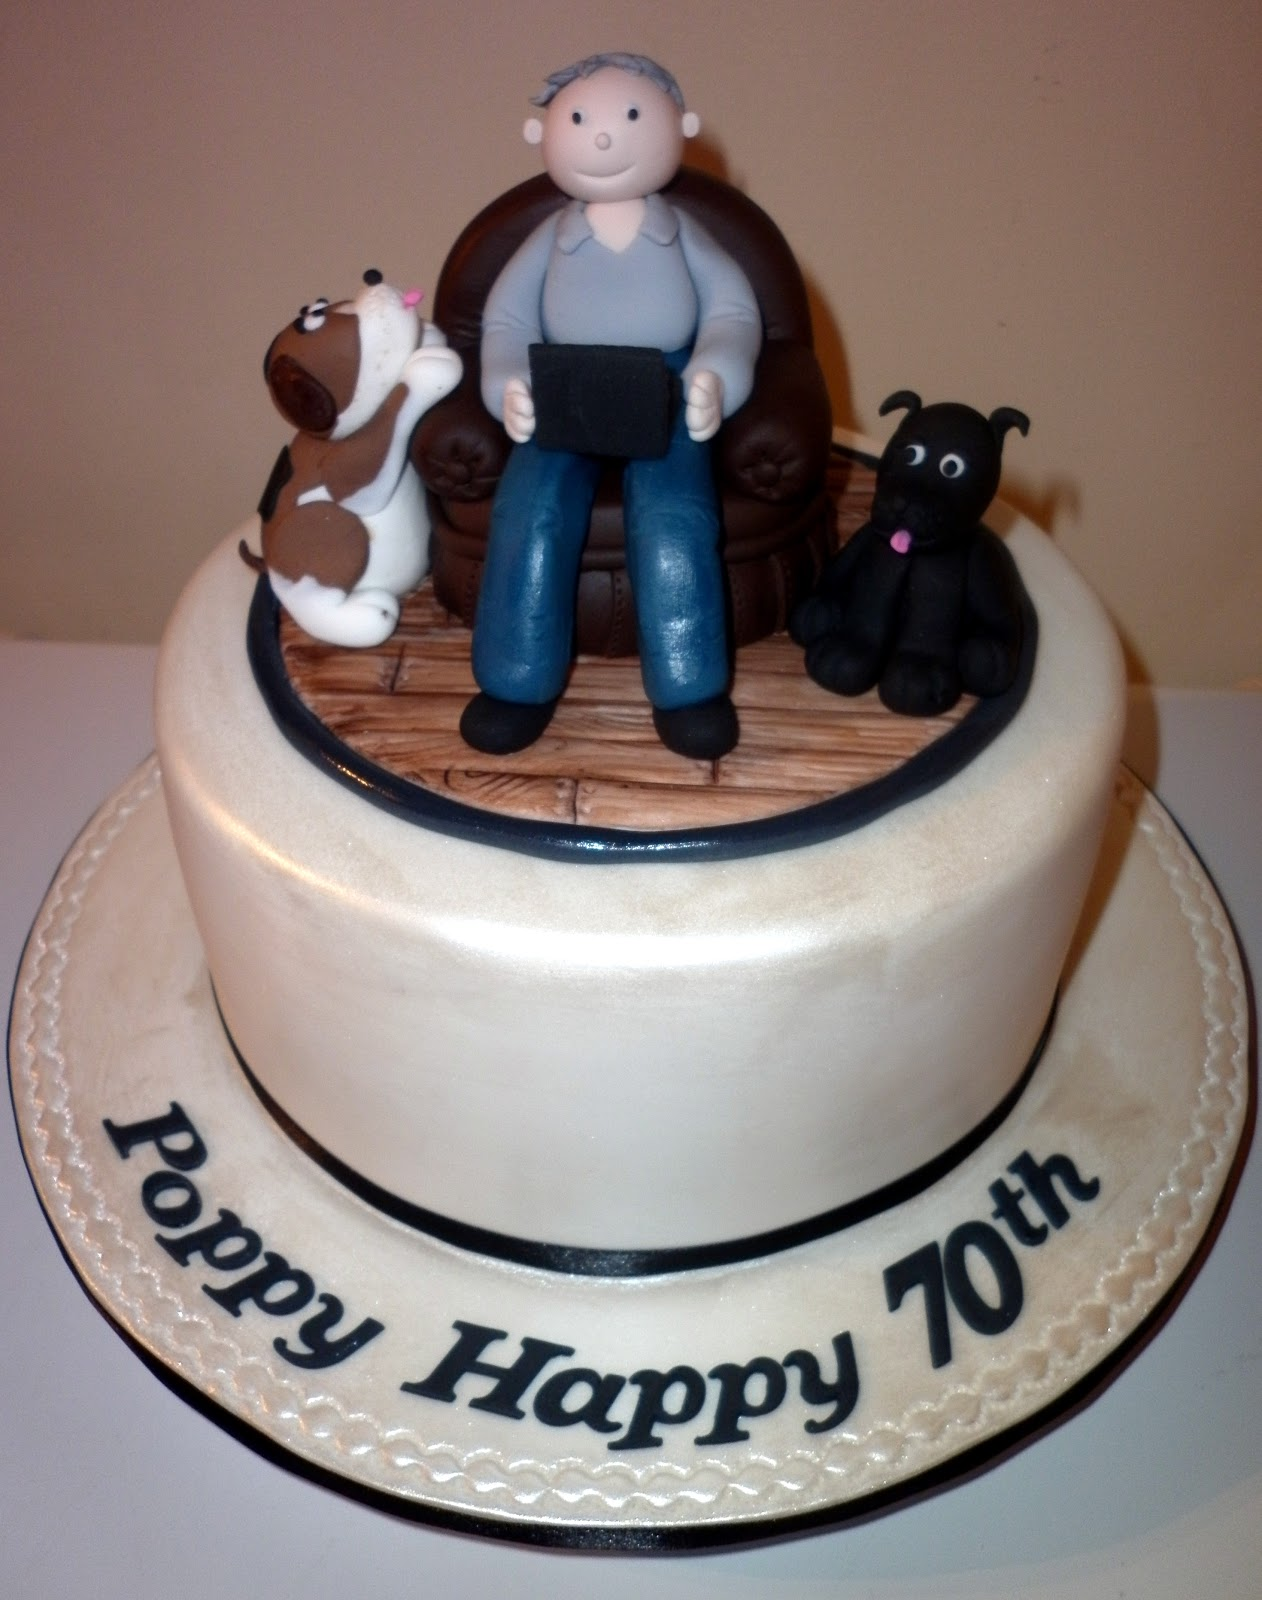 Naughty Birthday Cakes for Men http://caketopia.blogspot.com/2011/06/70th-birthday-cake.html